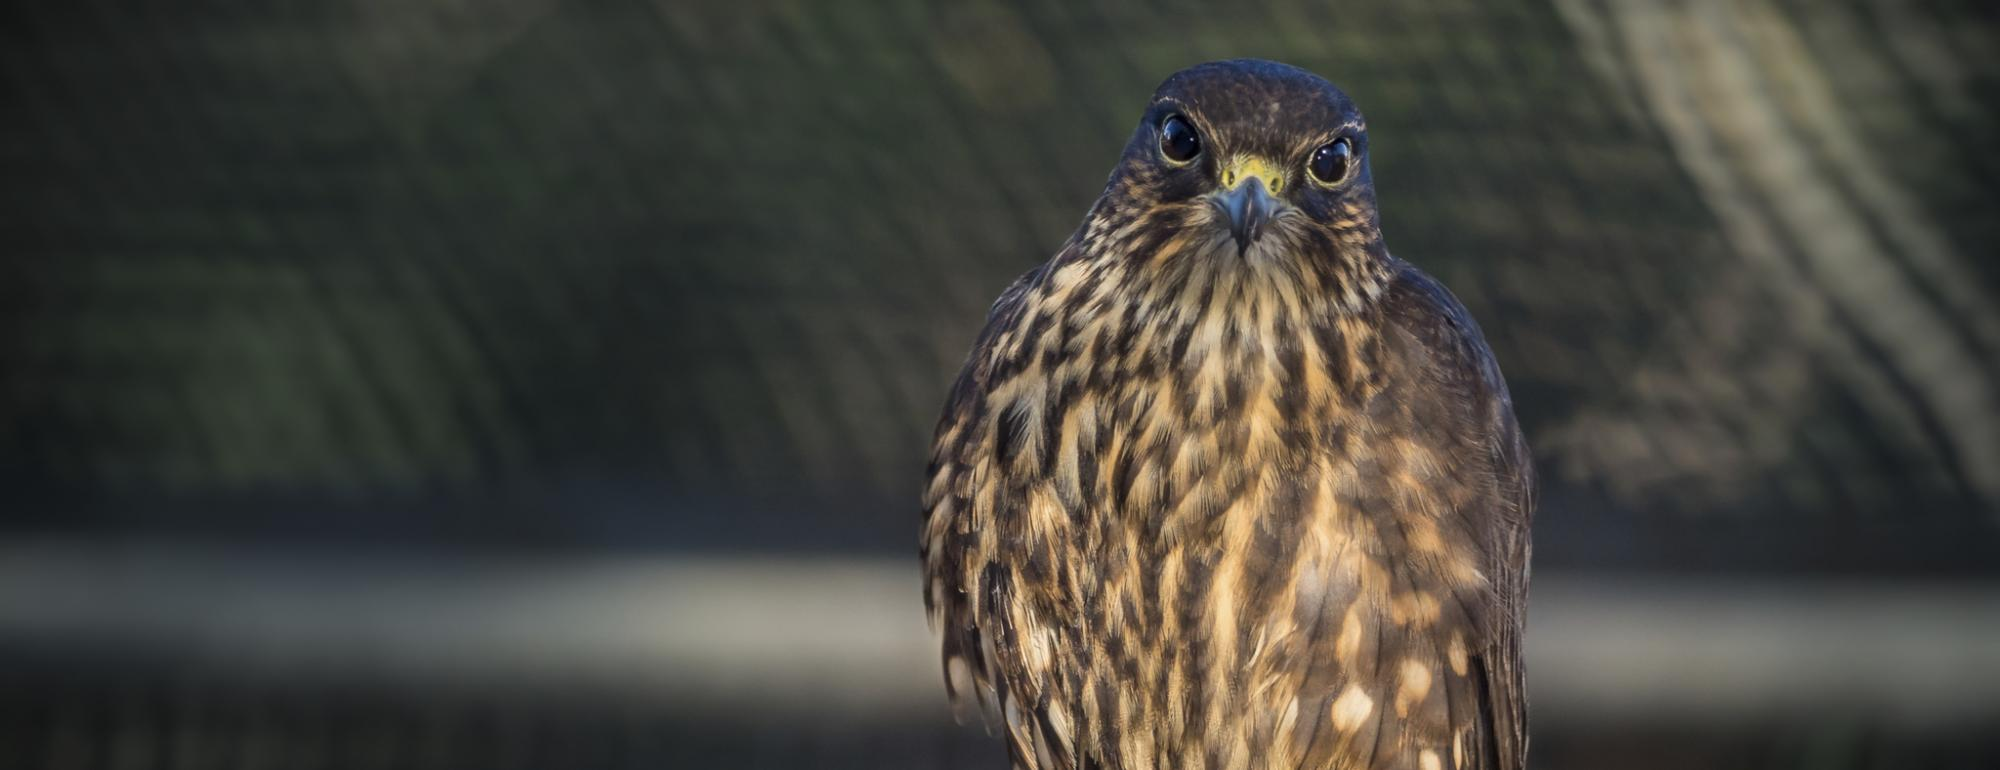 Merlin being rehabilitated for release into the wild